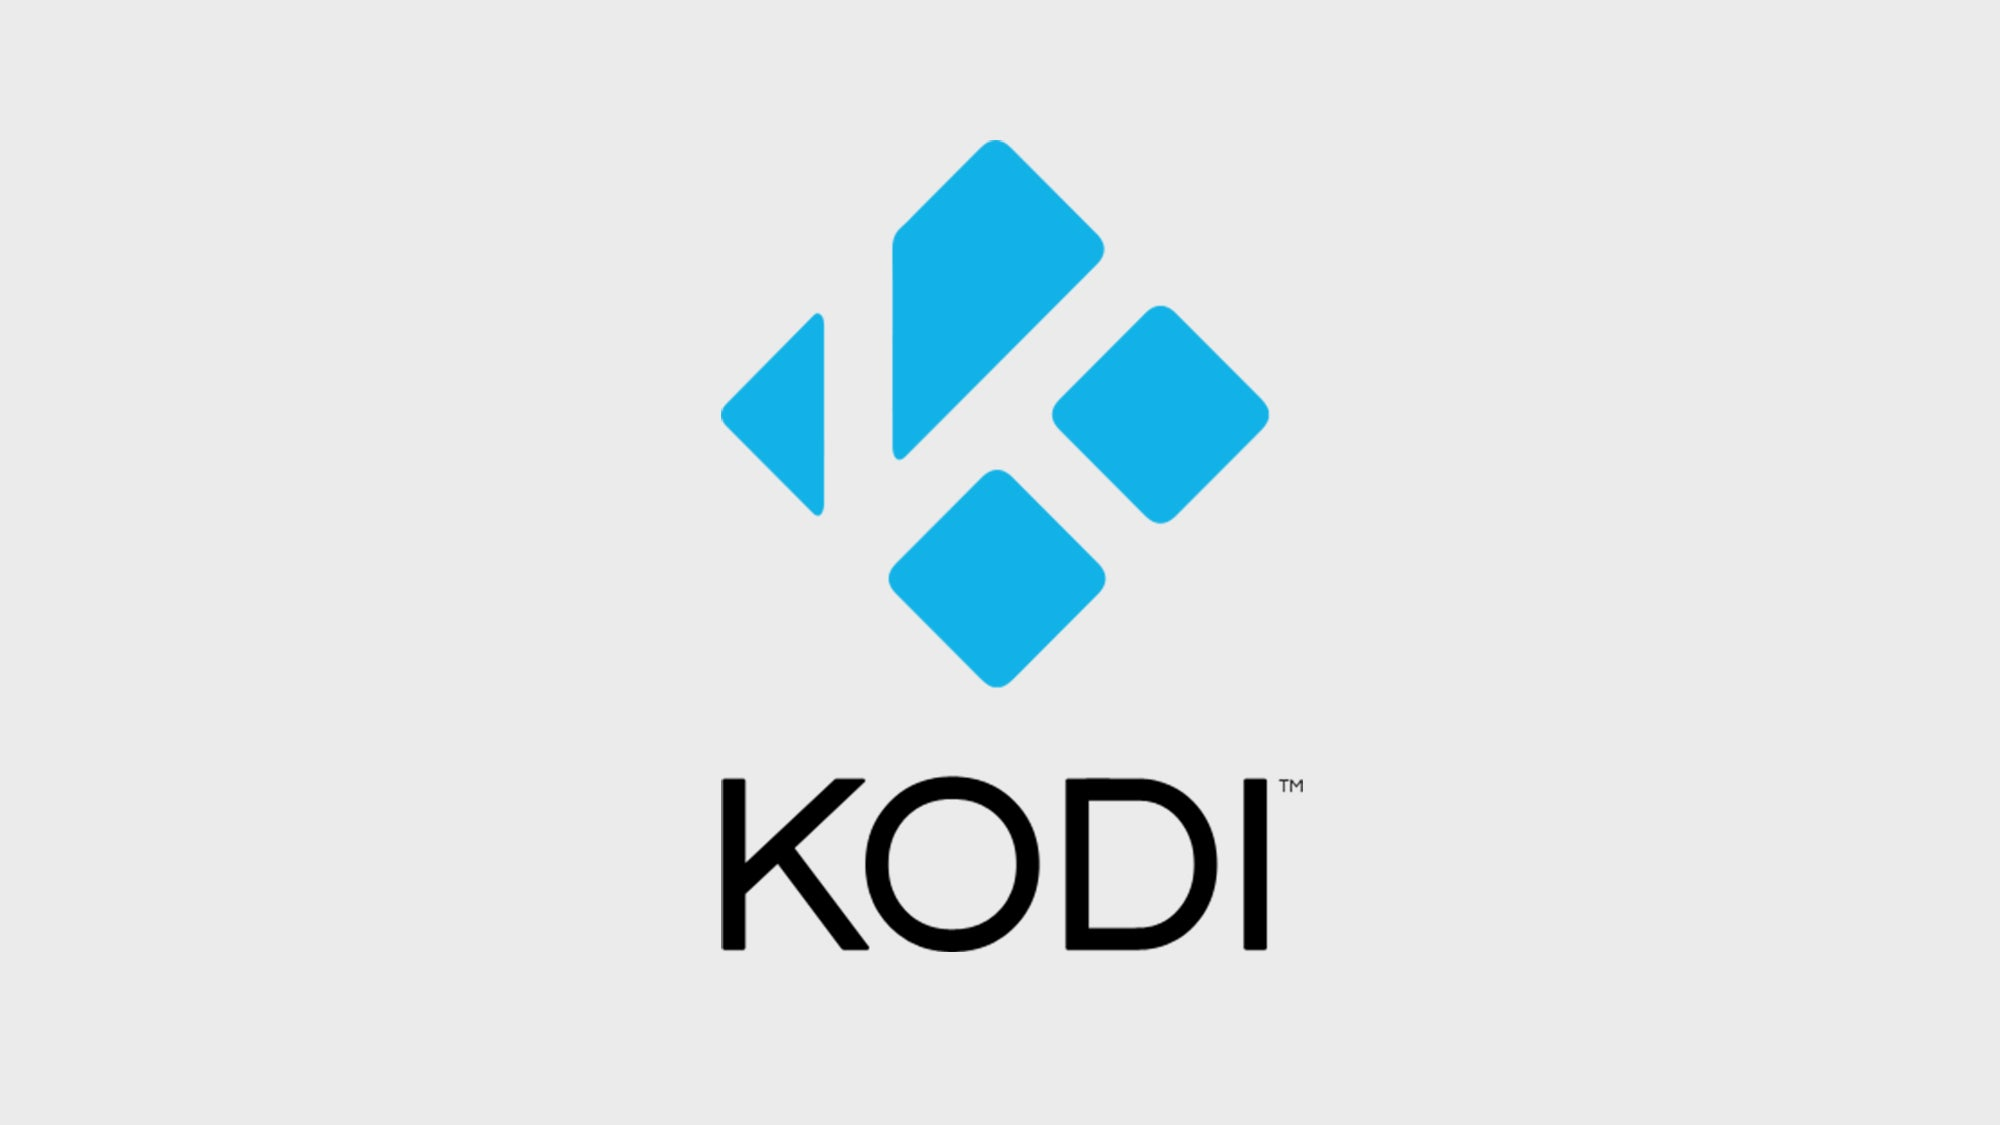 26 million people are believed to be using Kodi to view pirated content